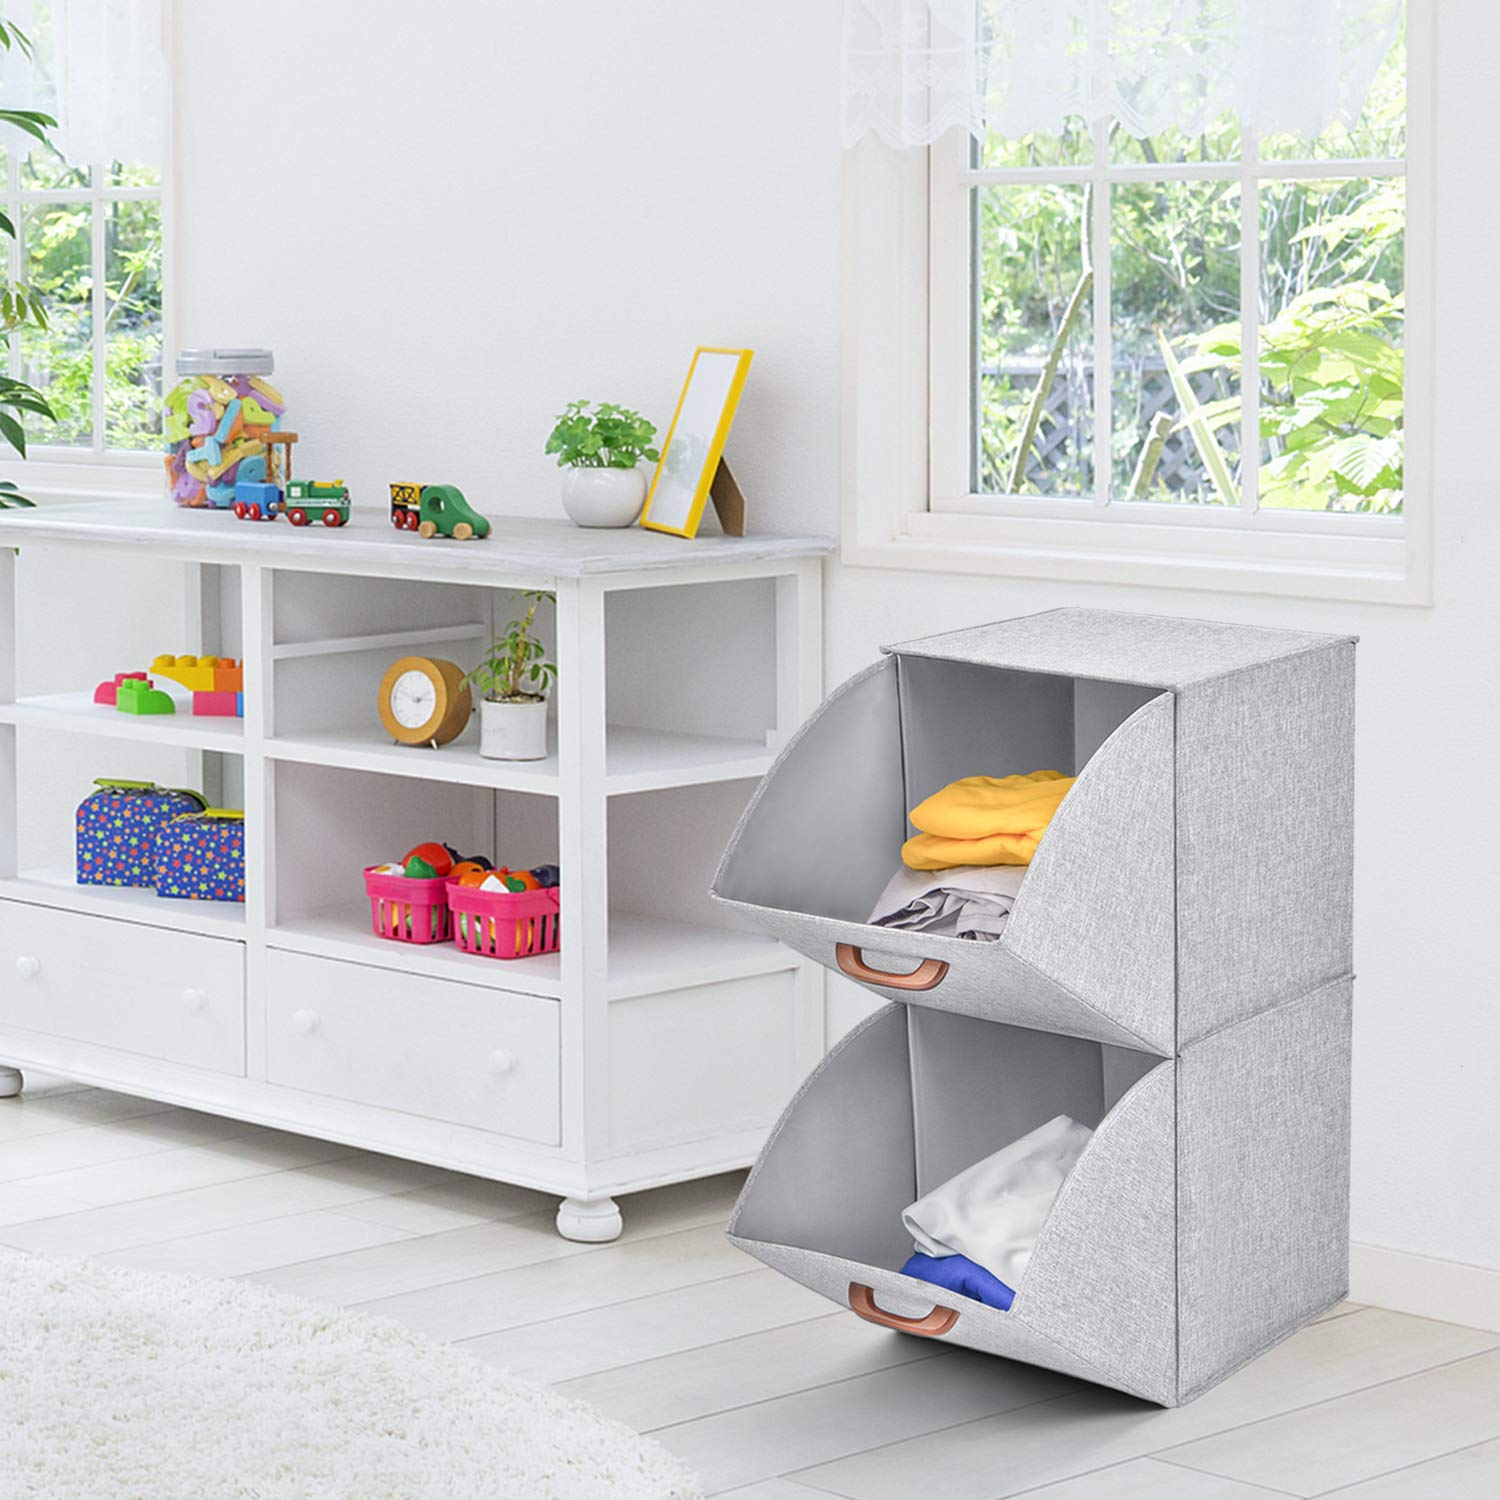 MaidMAX 2-Tier Collapsible Storage Organizer Pull-Down Doors with 2 Wooden Handles for Closet Grey 903134 Fabric Cube Bins Free Standing Home /& Office